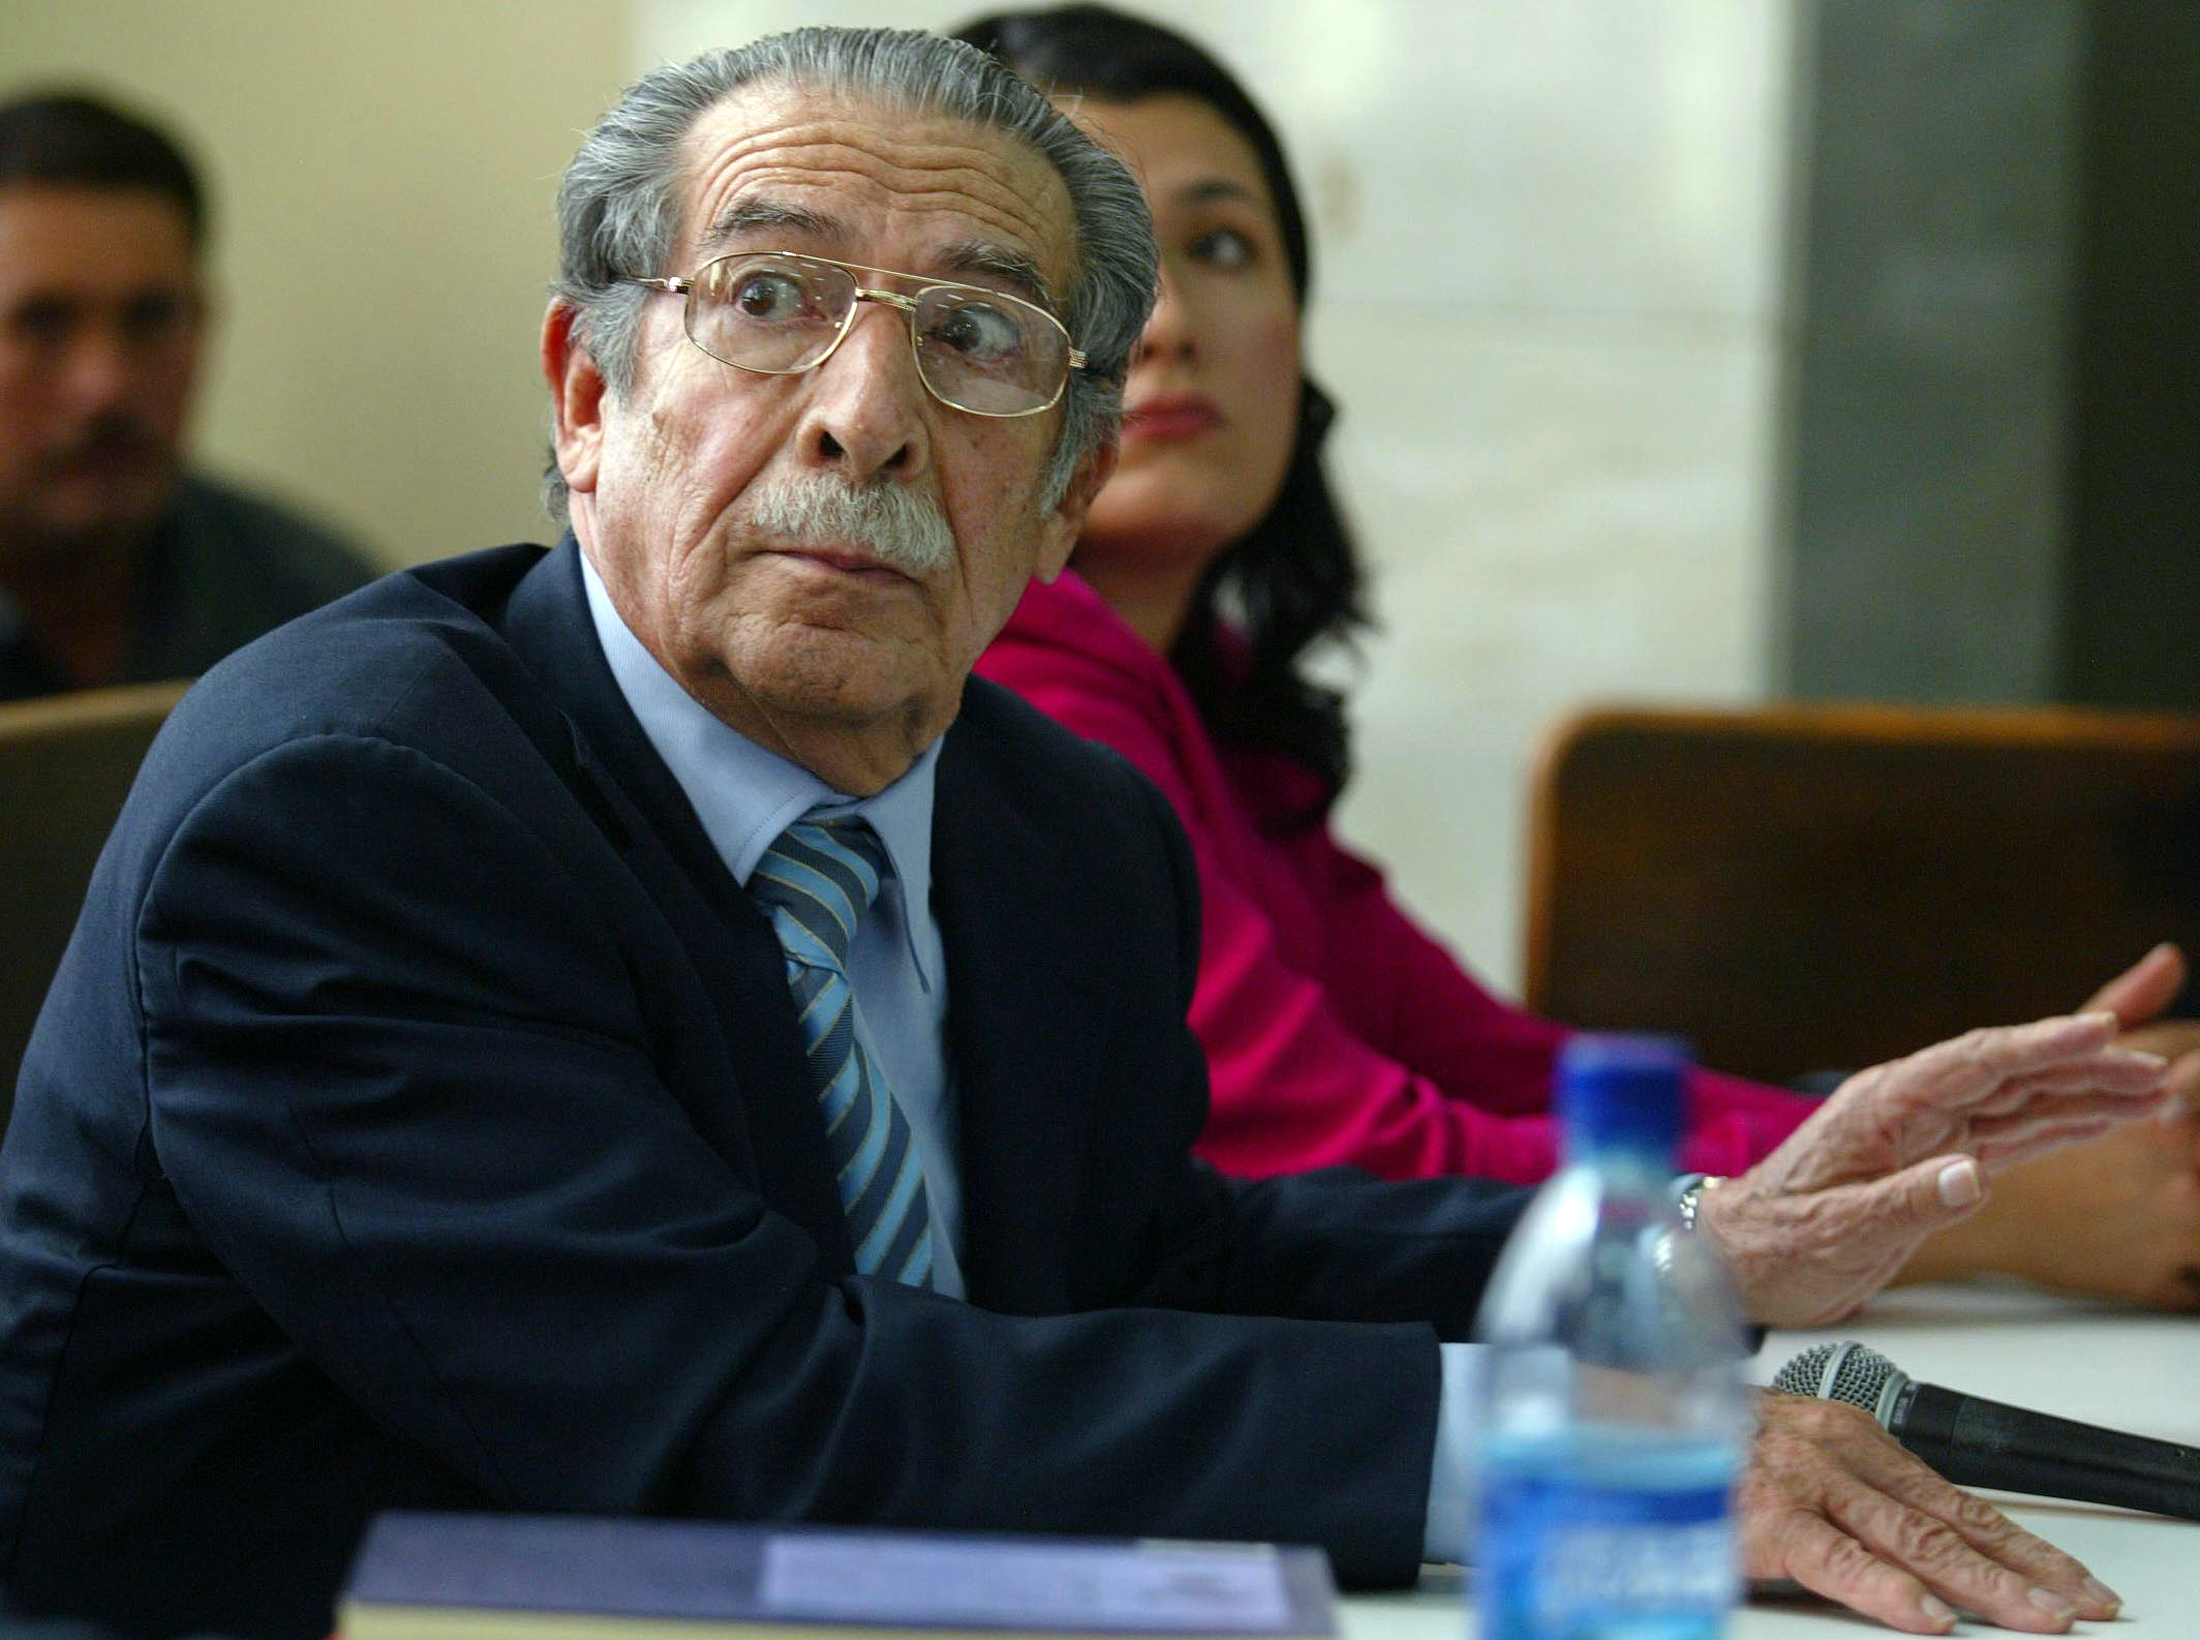 Former Guatemalan president Efrain Rios Montt listens during a court hearing in Guatemala City on Jan. 27, 2006. (Carlos Duarte/Reuters)